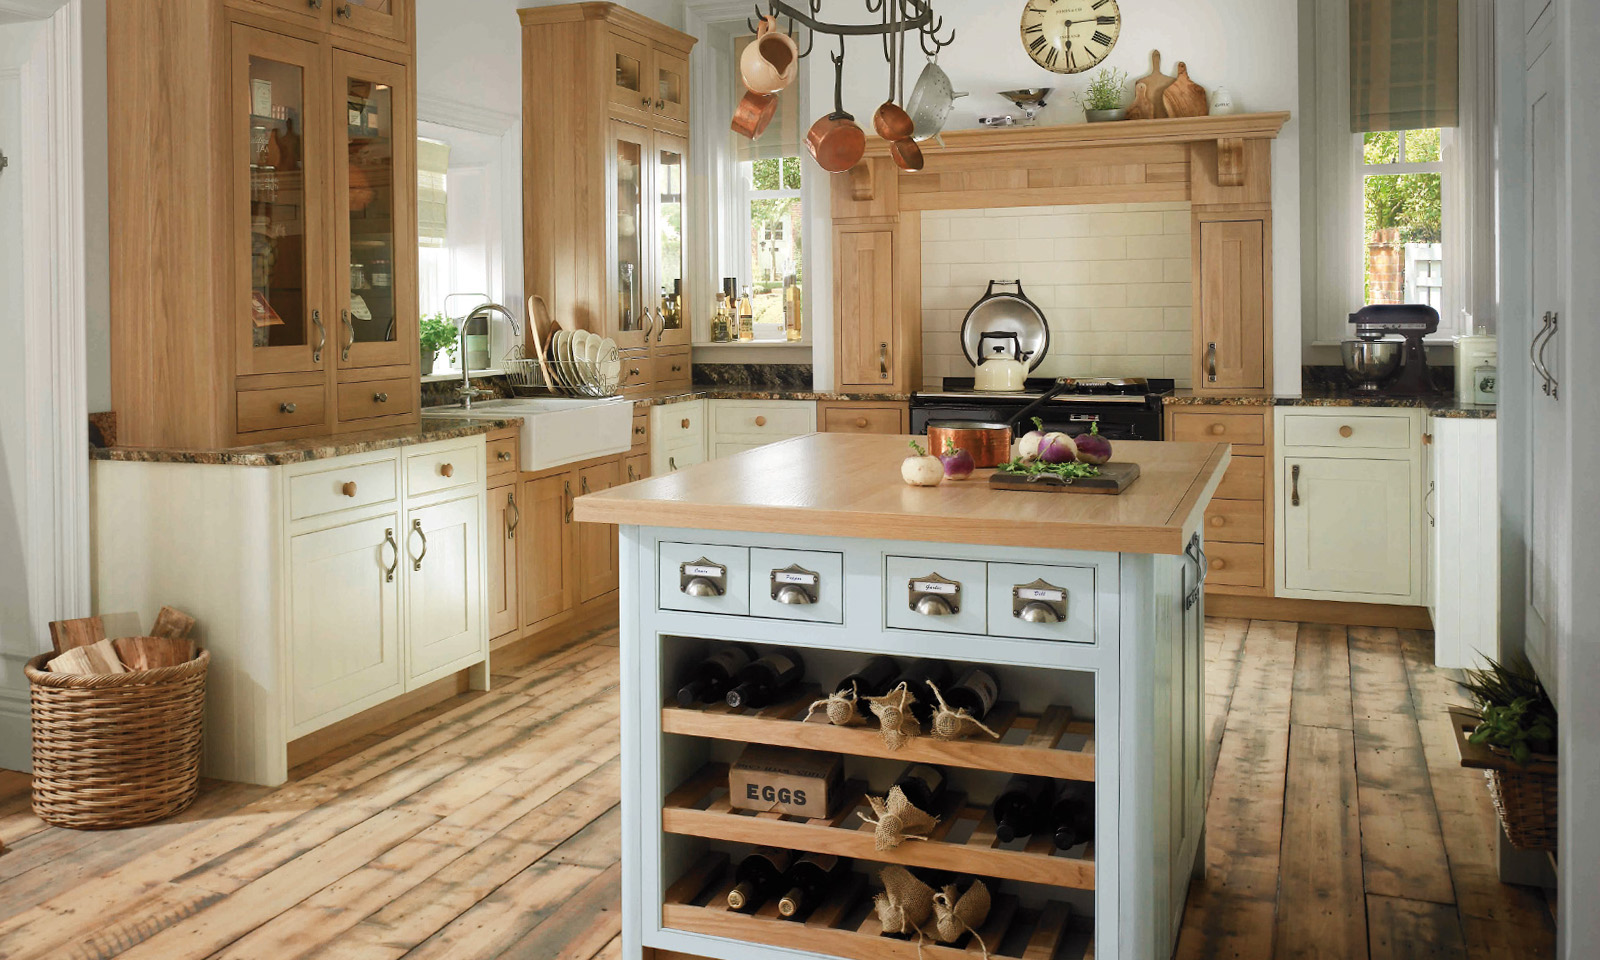 Pluckley. A bespoke, handmade, hand-painted in-frame kitchen, designed for a large socially active family. Another hand-crafted kitchen manufactured by the skilled cabinet makers at Mounts Hill Woodcraft.